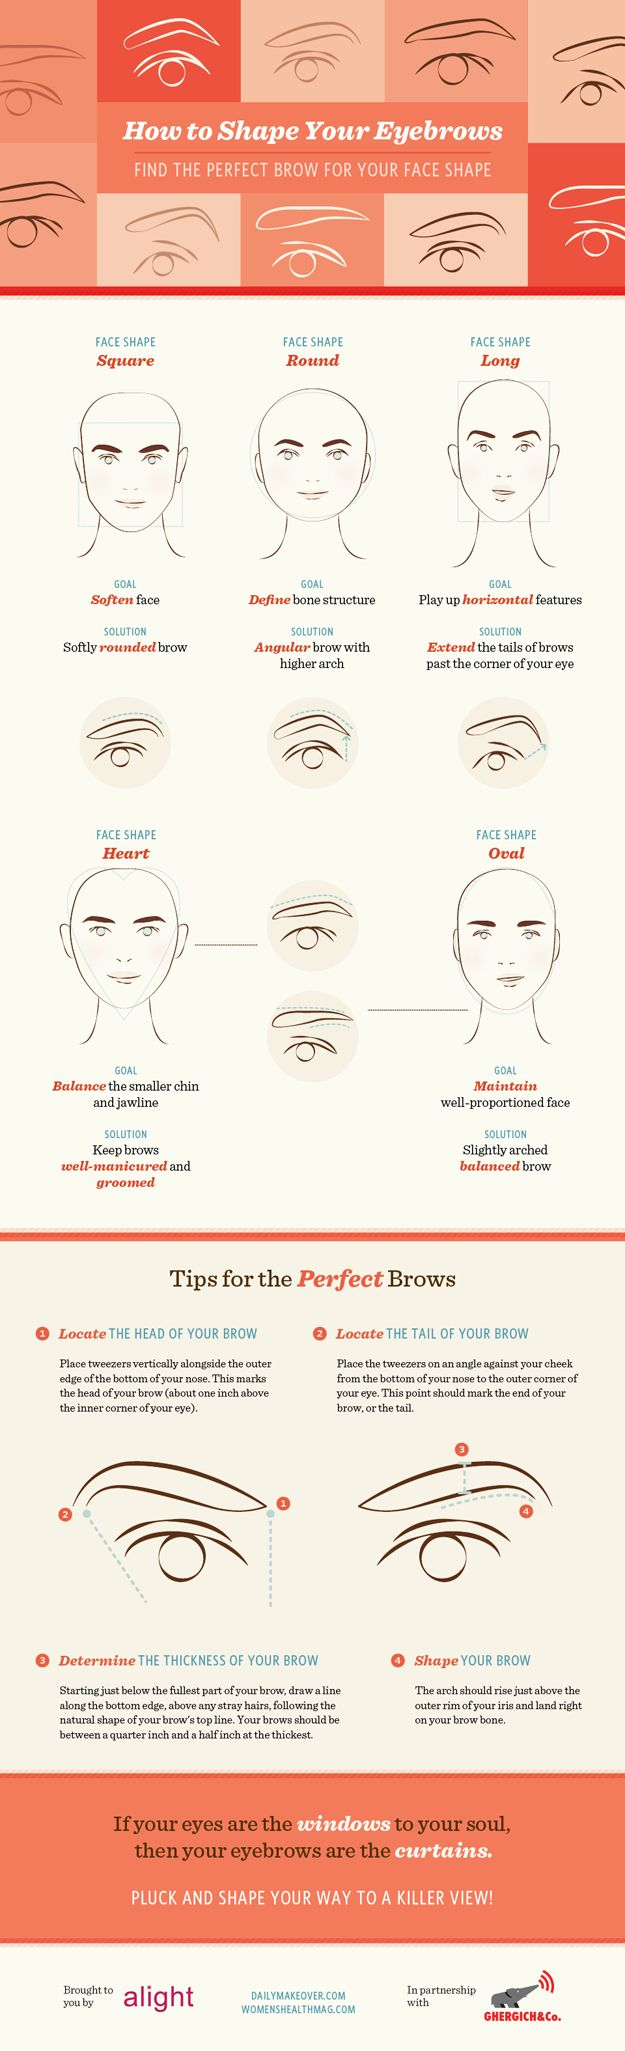 Eye Liner Guide: 9 Simple Steps to Perfect Makeup viaVisual.ly Best Blushes for Your Skin Type via Makeup Blushing Basics via The Glitter Guide Best Brows for Your Face Shape viaYour Beauty Blog